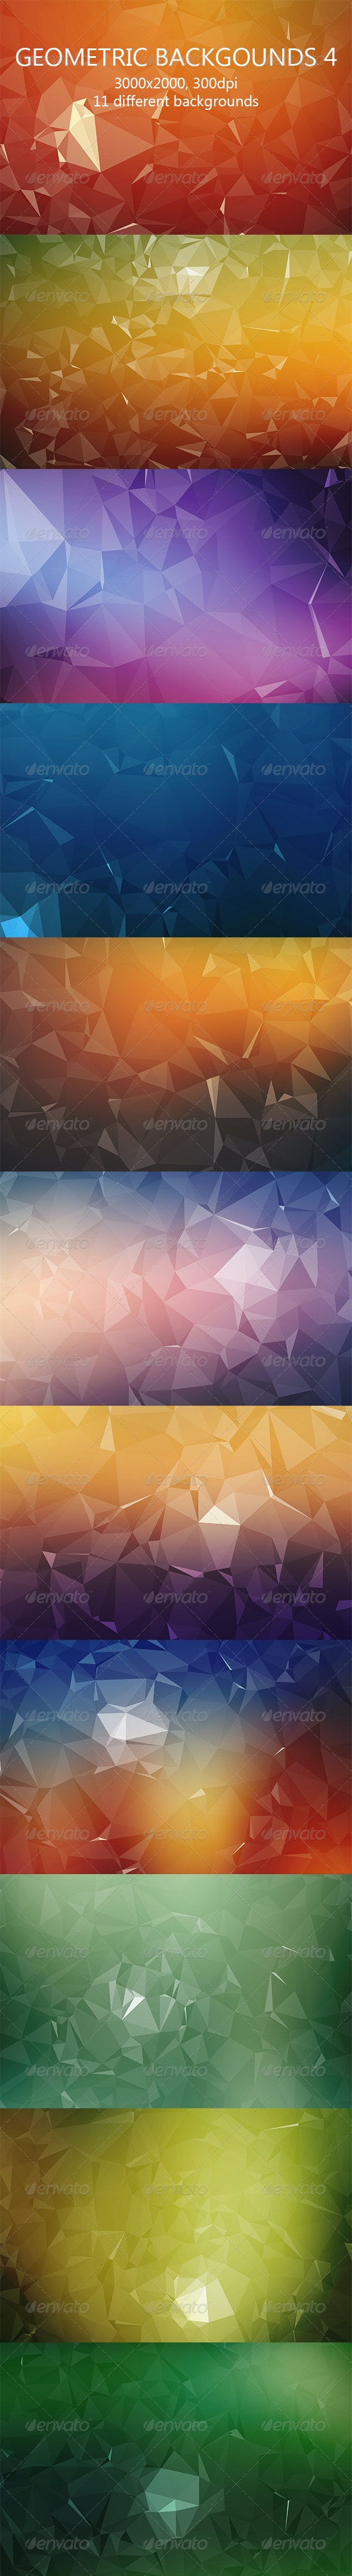 Geometric Backgrounds 4 - Abstract Backgrounds